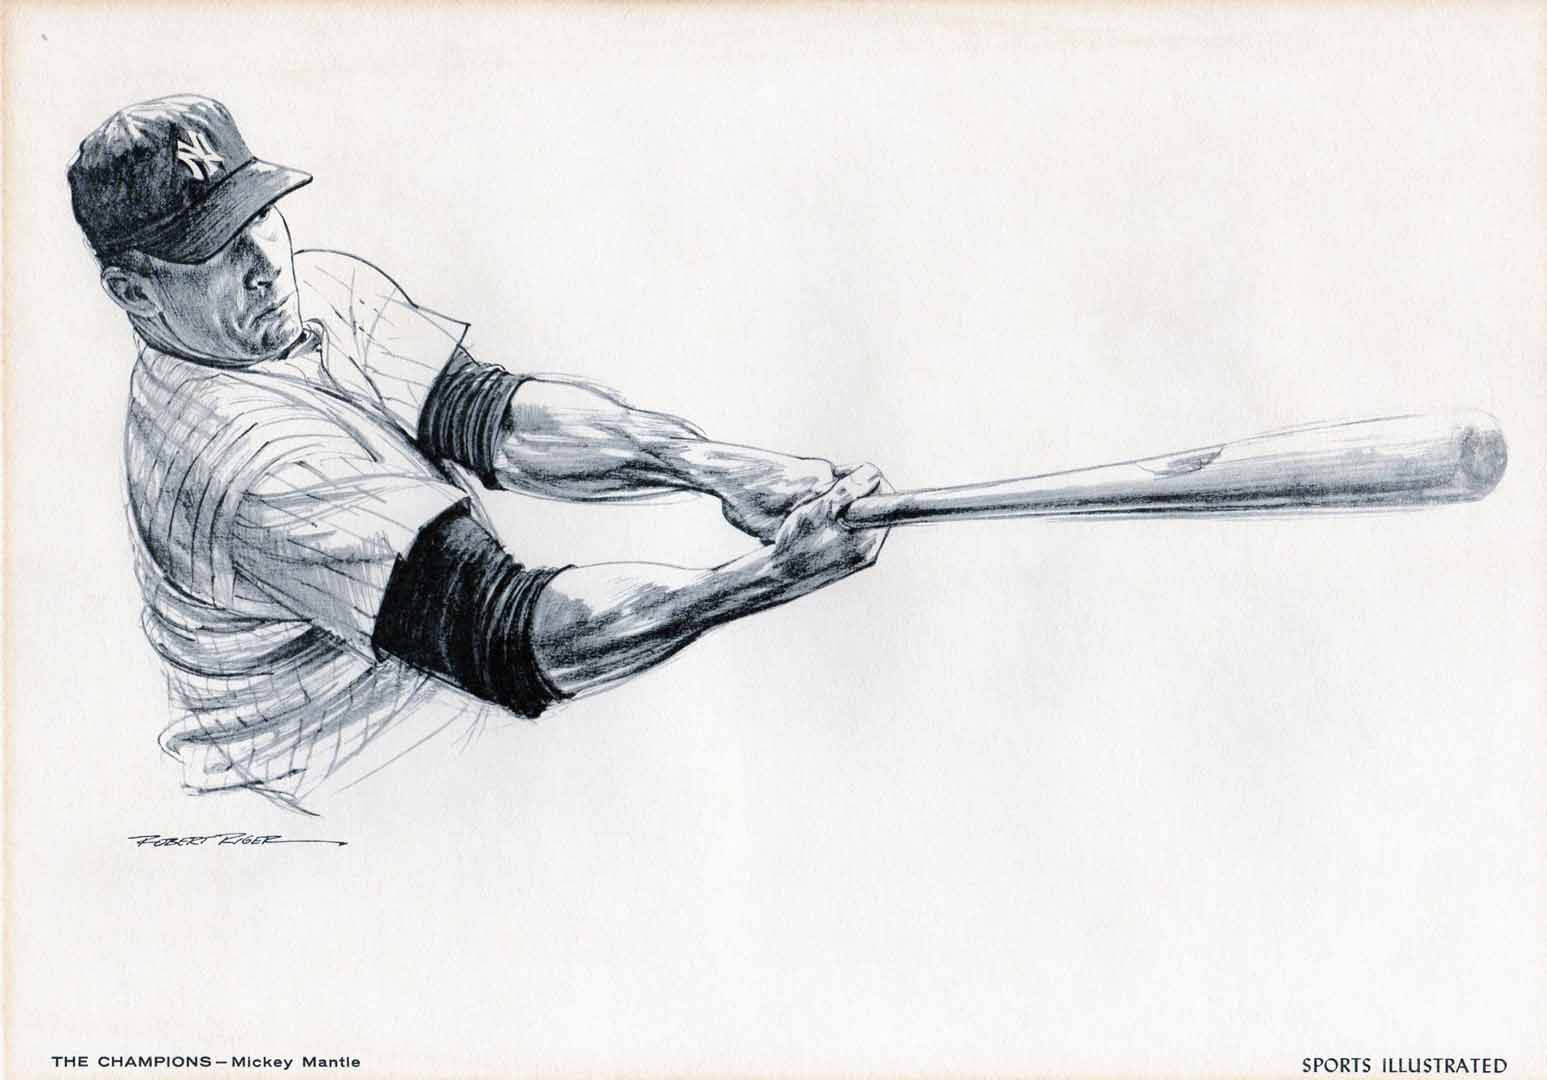 1962 SI, Robert Riger drawing send in premium